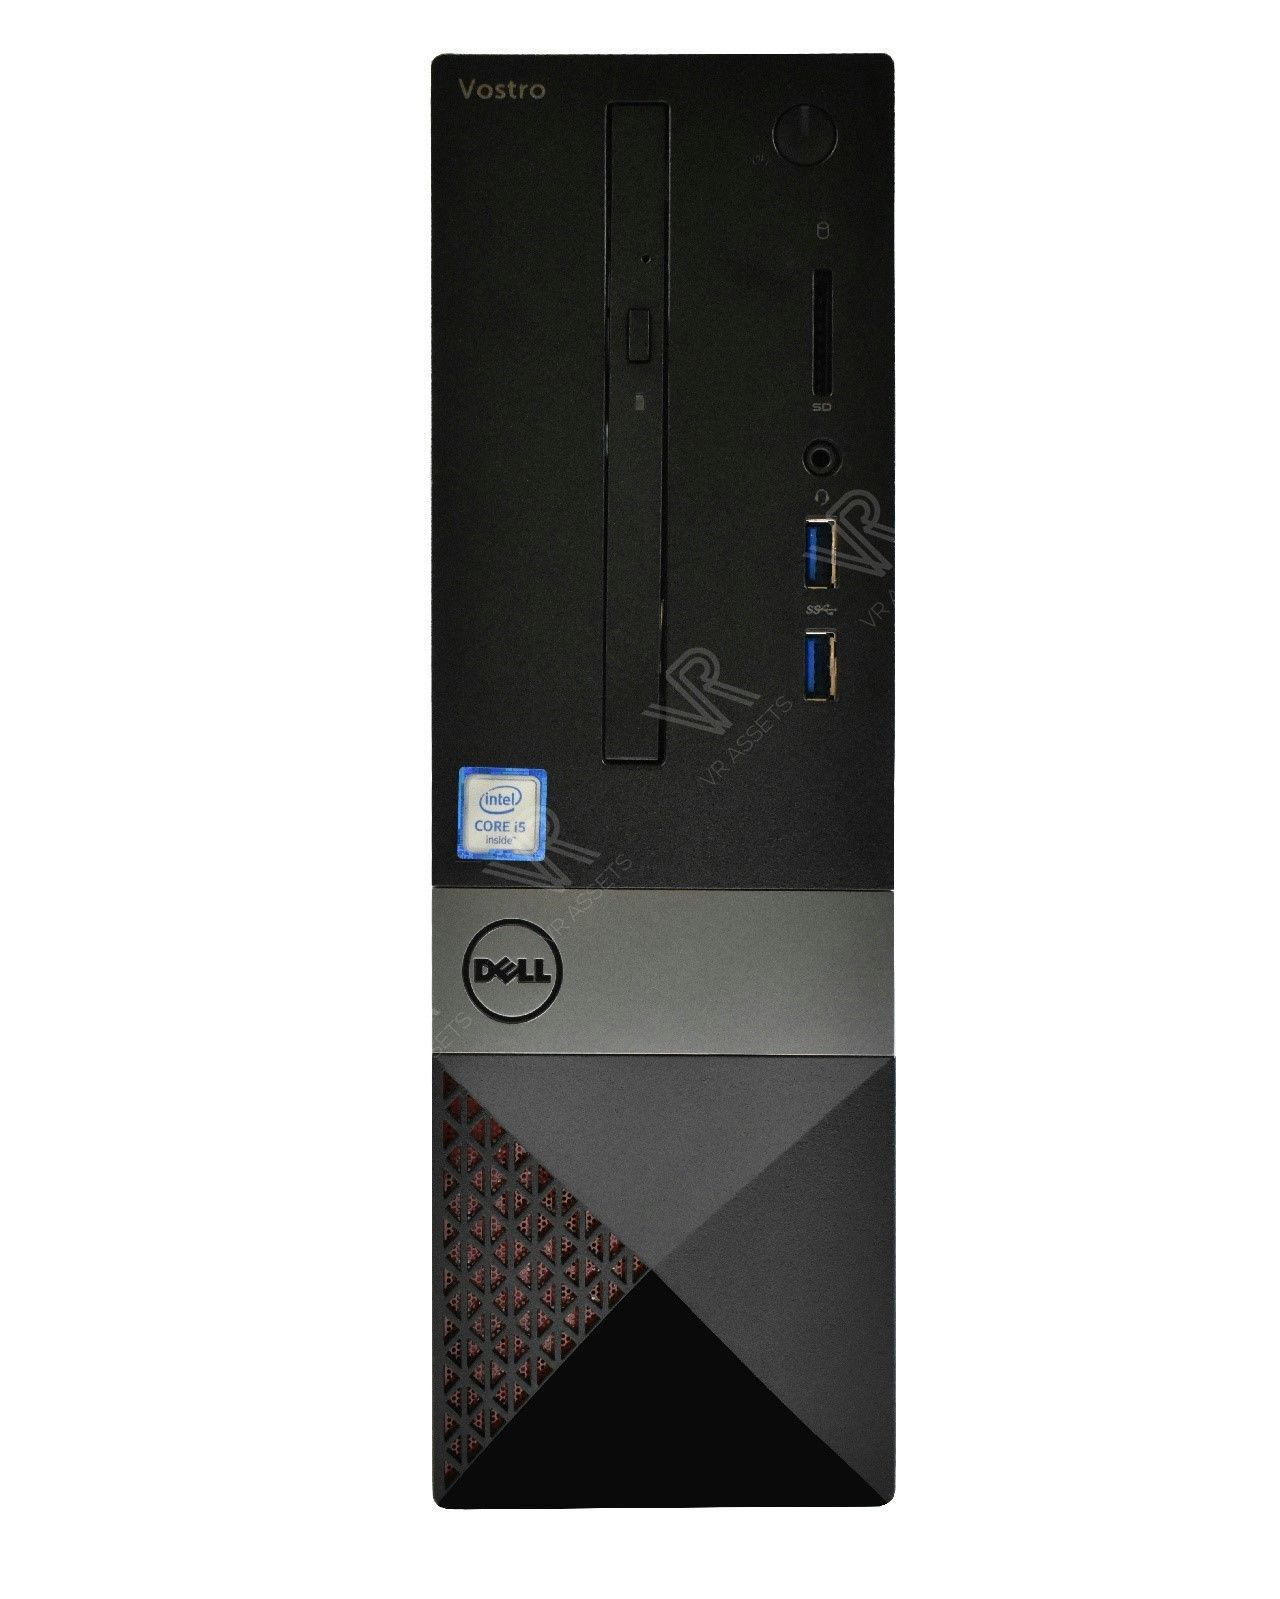 Dell Vostro 3250 SFF I5-6400 4Gb 1Tb VGA HDMI Wifi BT Windows 10 Pro Desktop